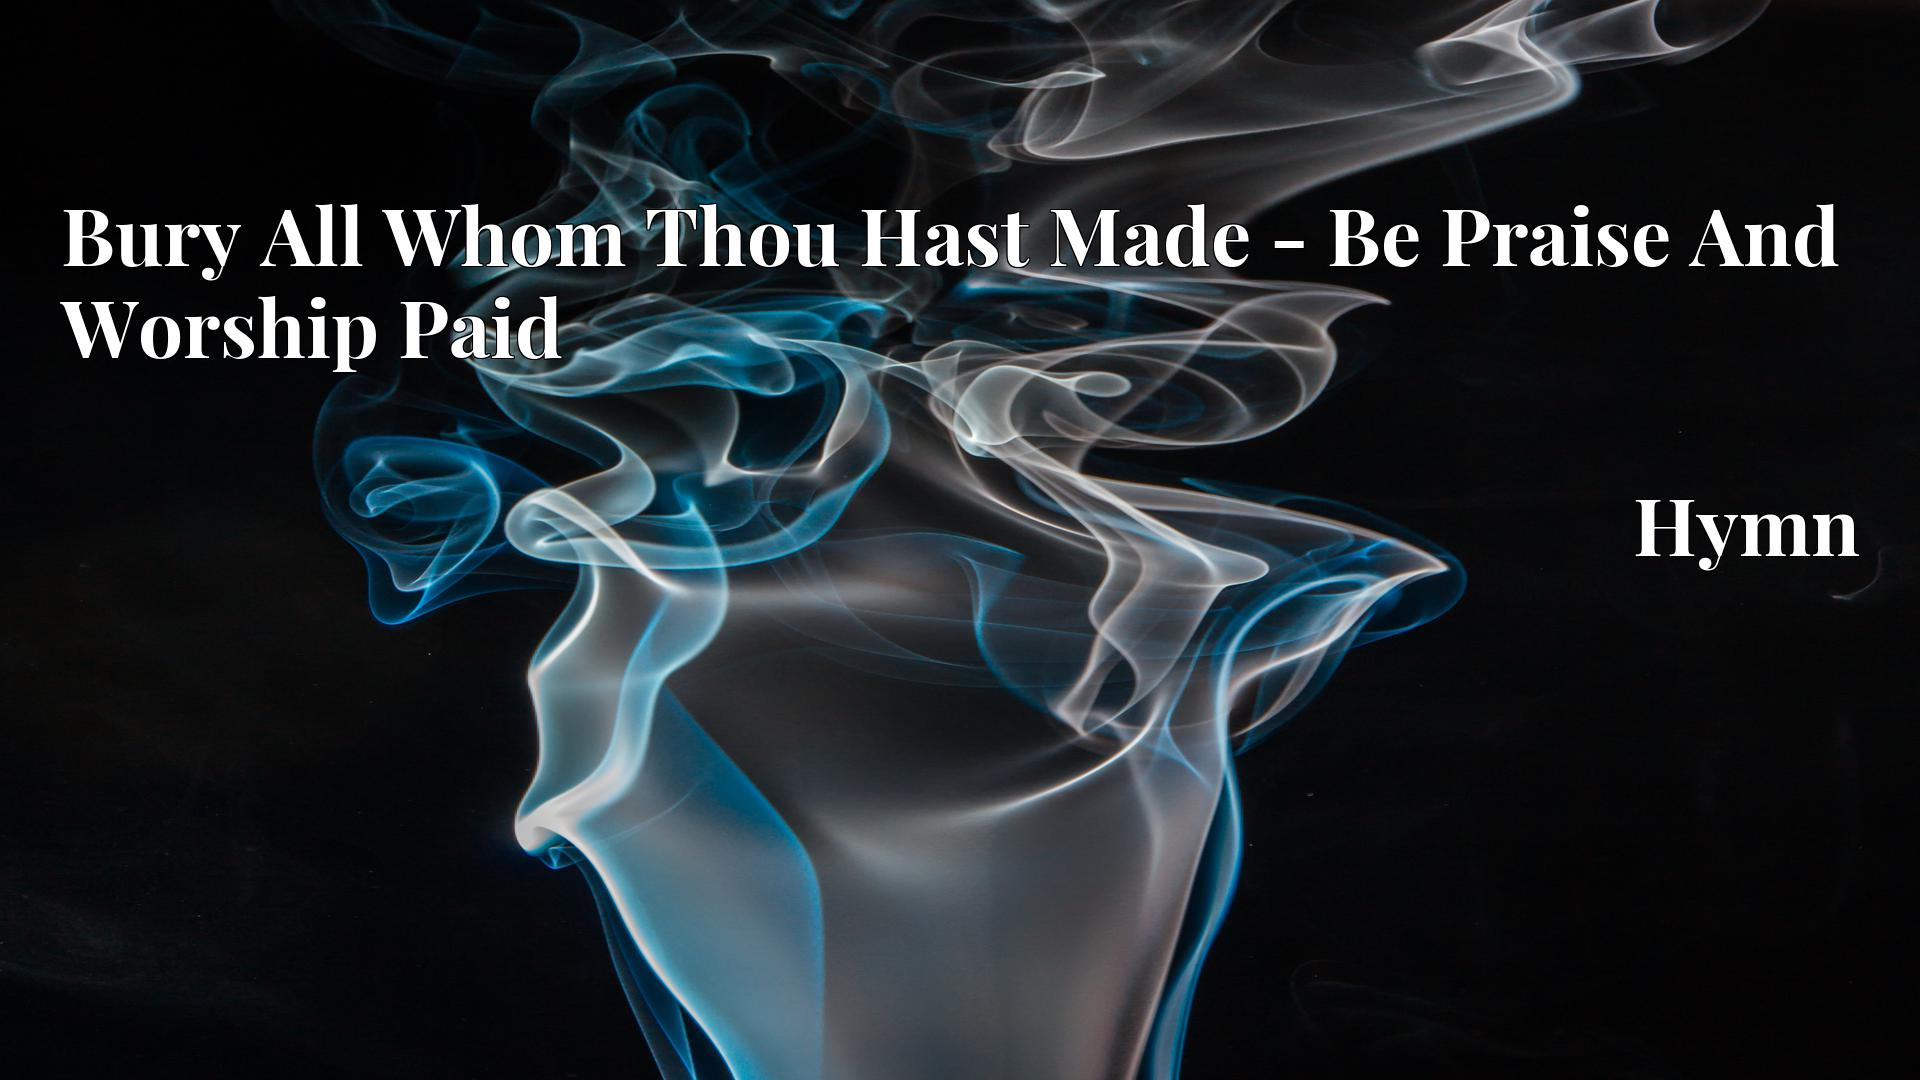 Bury All Whom Thou Hast Made - Be Praise And Worship Paid Hymn